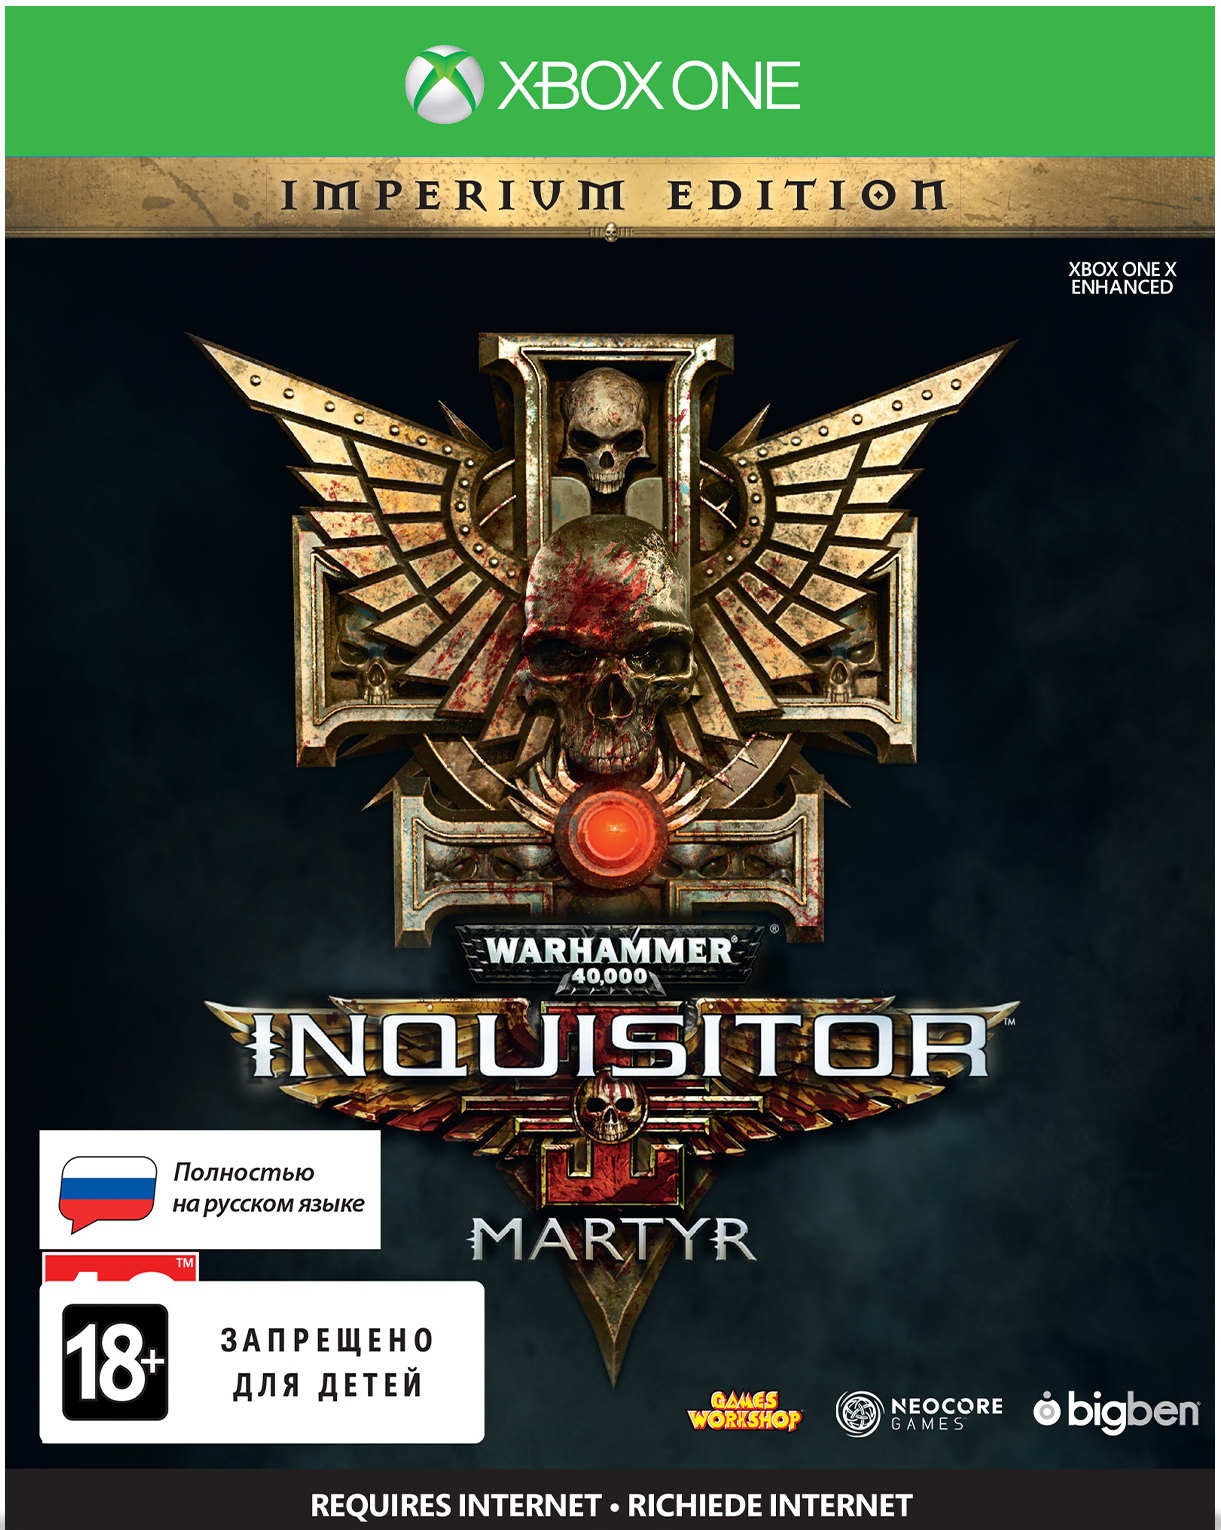 Warhammer 40,000: Inquisitor – Martyr. Imperium Edition [Xbox One] bigben interactive xb1hdmiflat